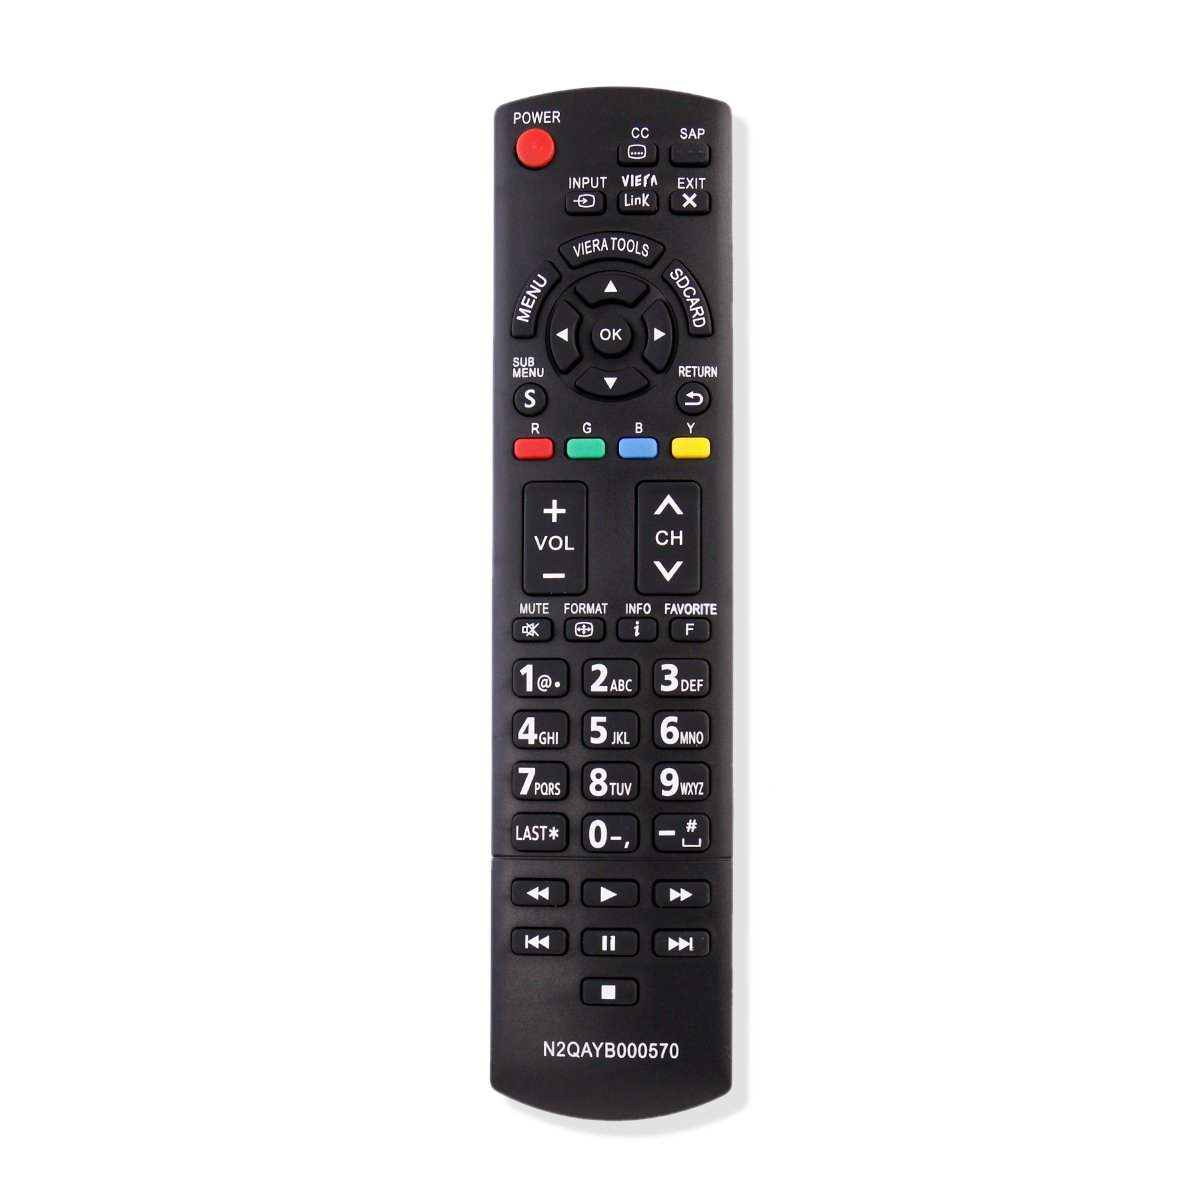 New N2QAYB000570 Replacement Remote Control Fit for Panasonic TV TC-32LX34 TC-32LX44S TC-42PX34 TC-50PX34 TC-60PS34 TC-60PS34UA TC-L37E3 TC-L37U3 TC-L42E3 TC-L42E30 TC-L42U30